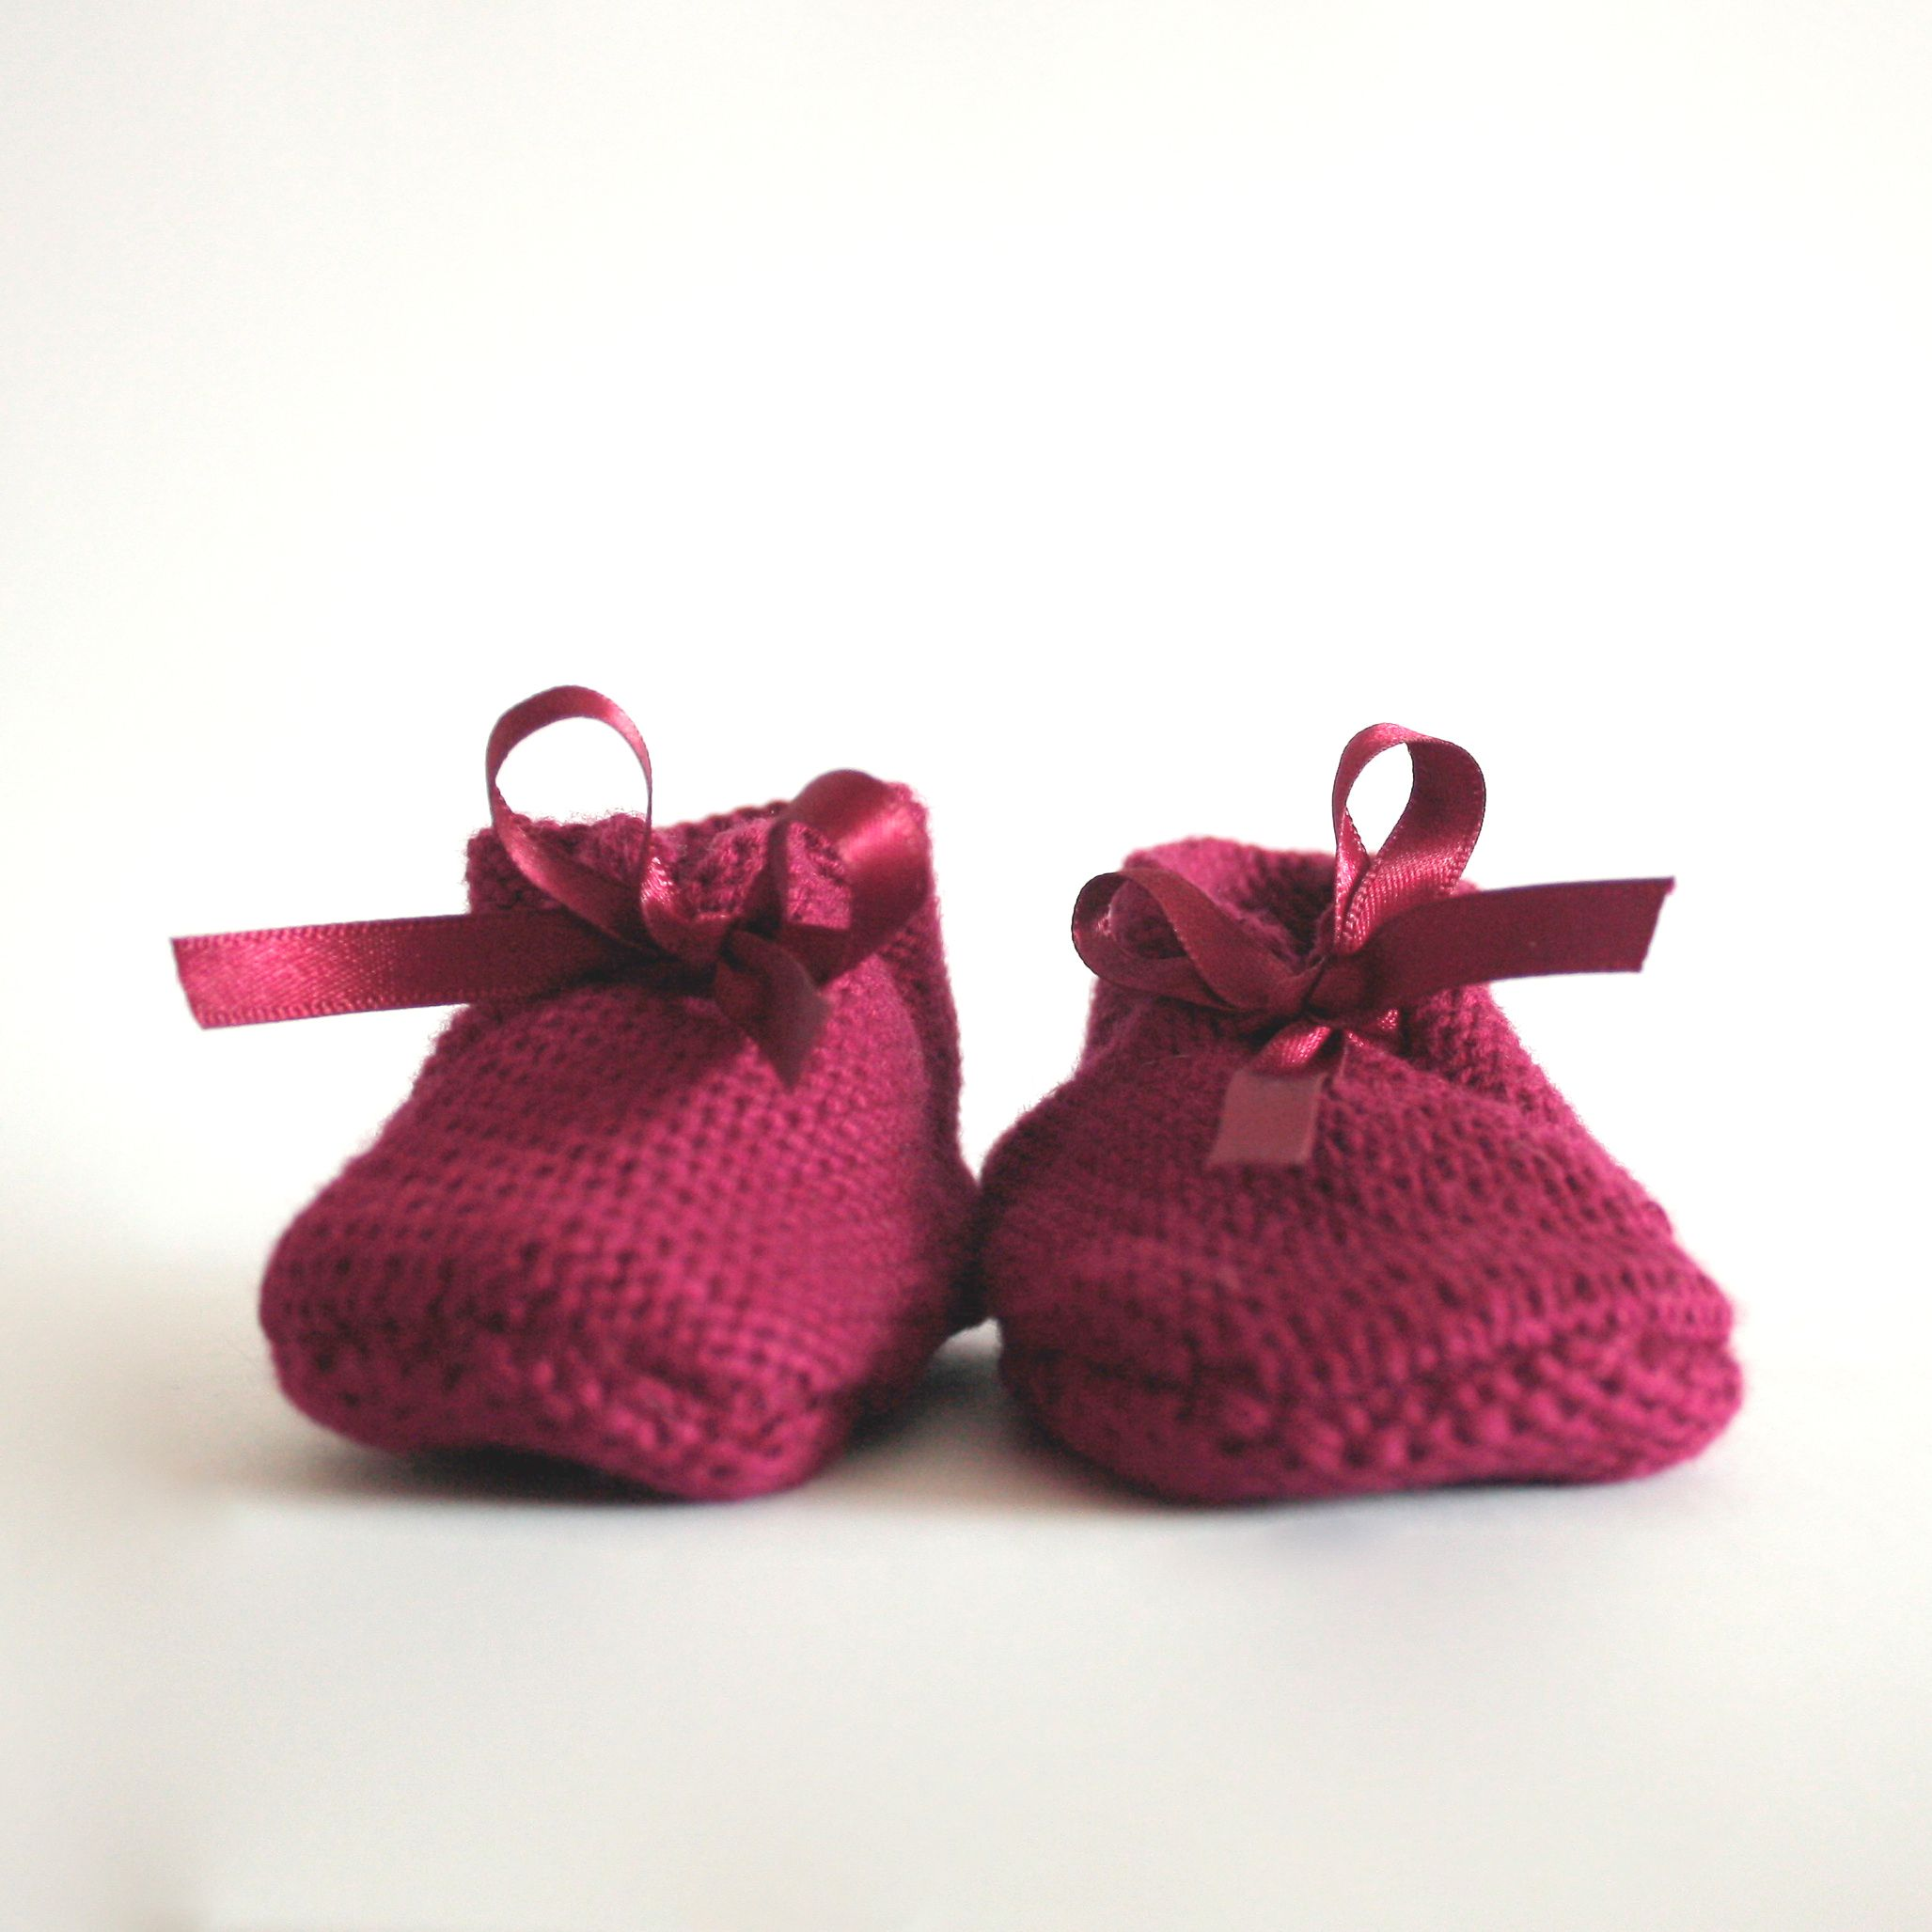 WOLK Amsterdam Burgundy handmade knitted baby booties made of